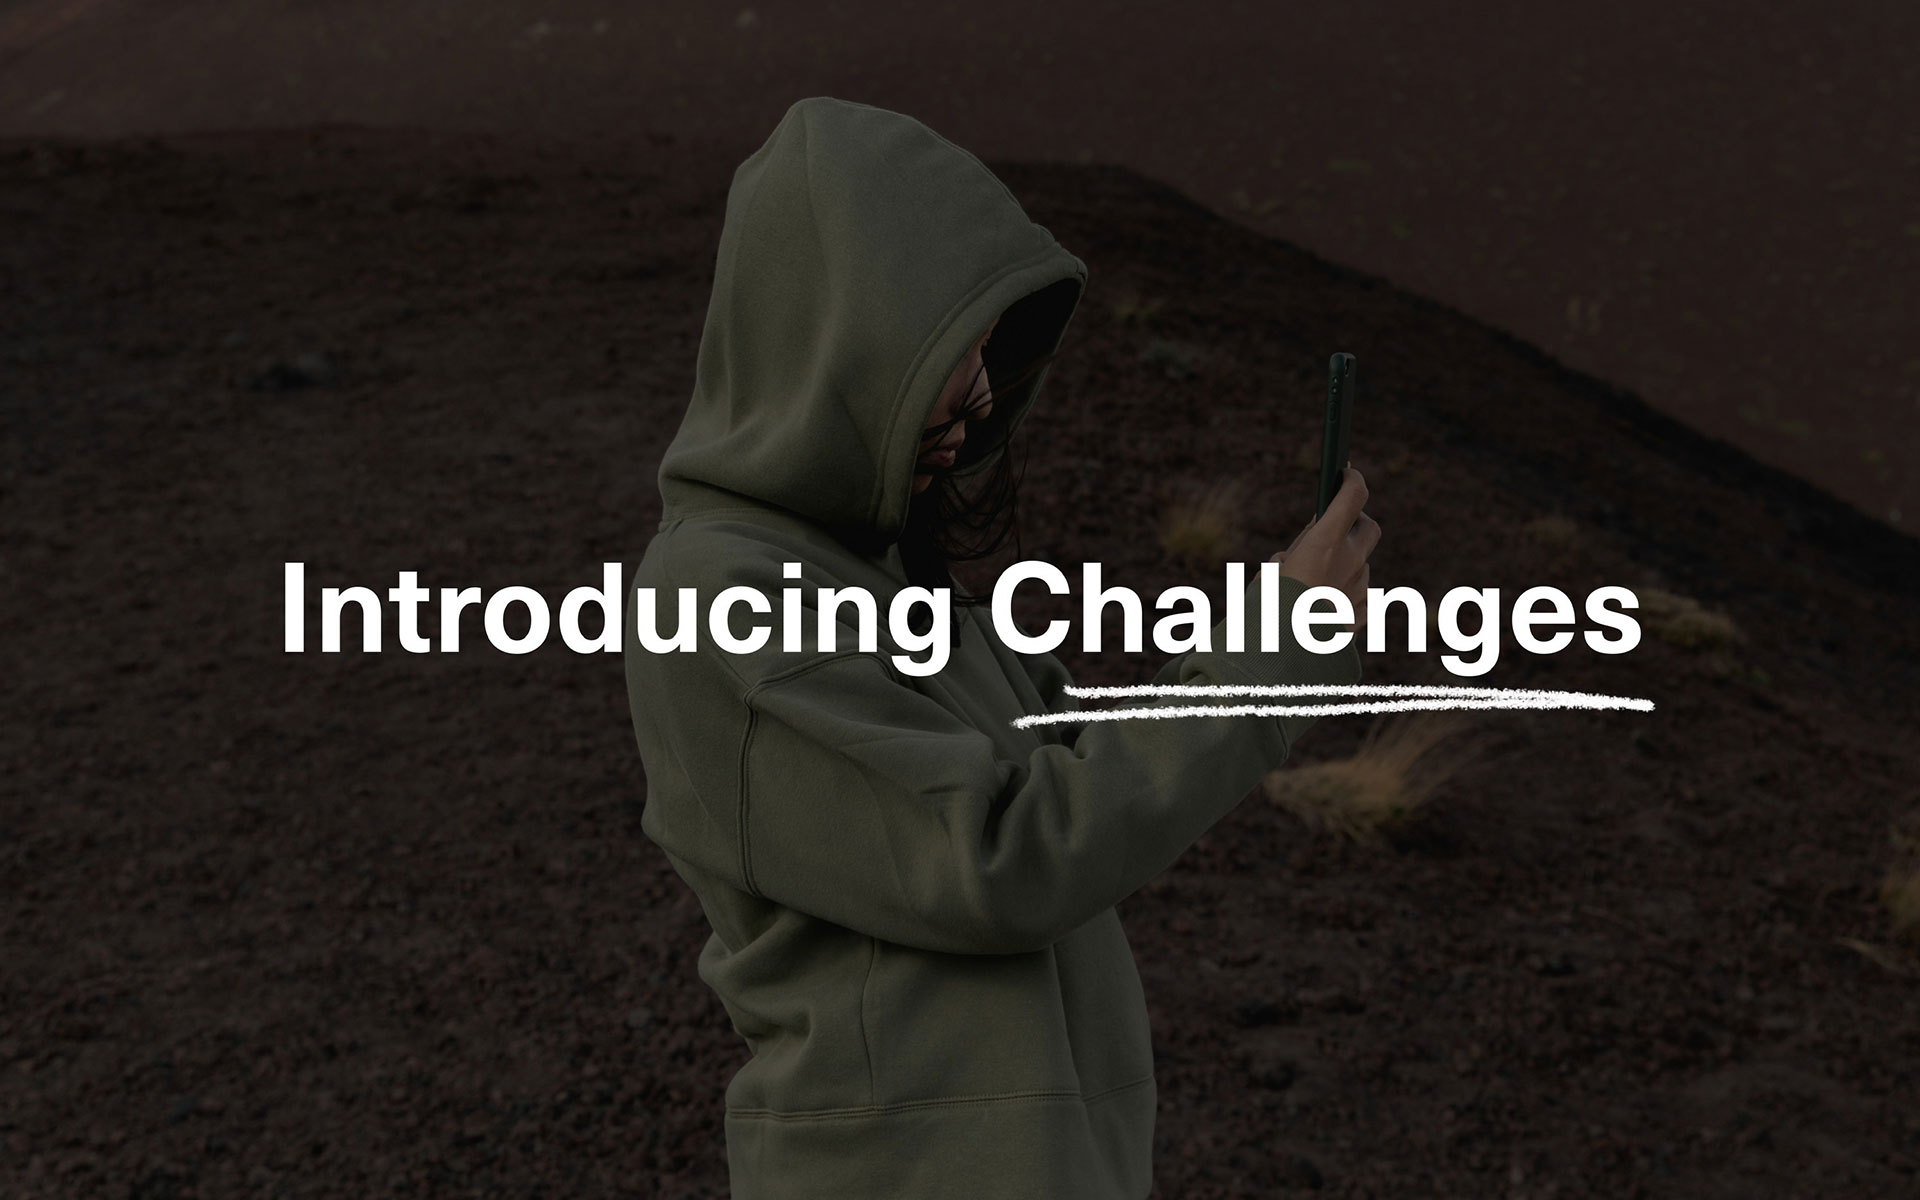 Introducing Challenges on Vocal